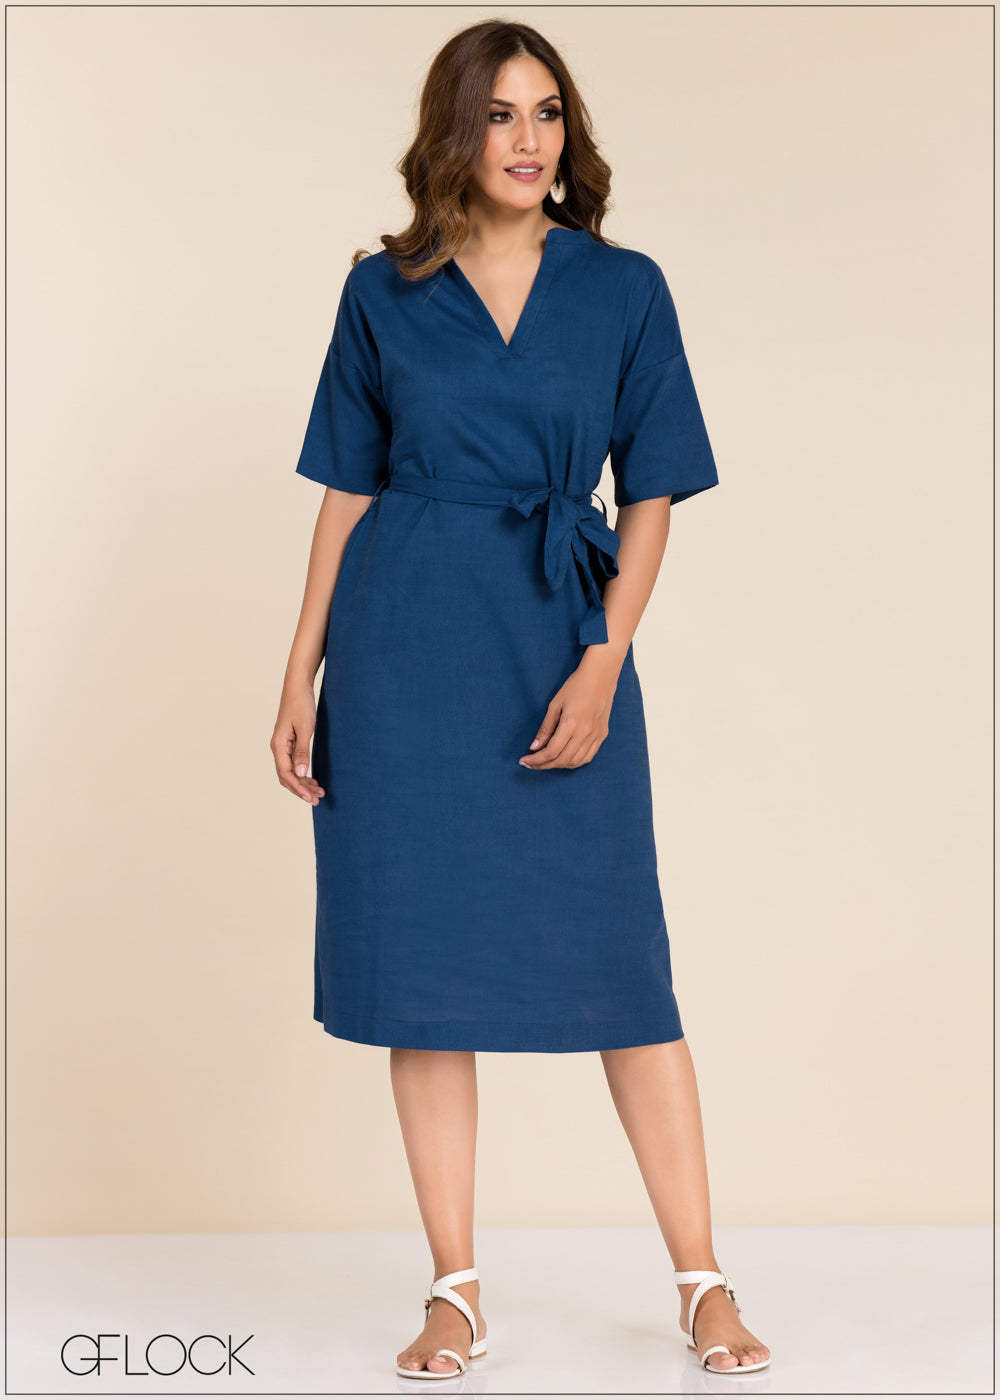 V Neck Tie Up Dress - GFLOCK.LK